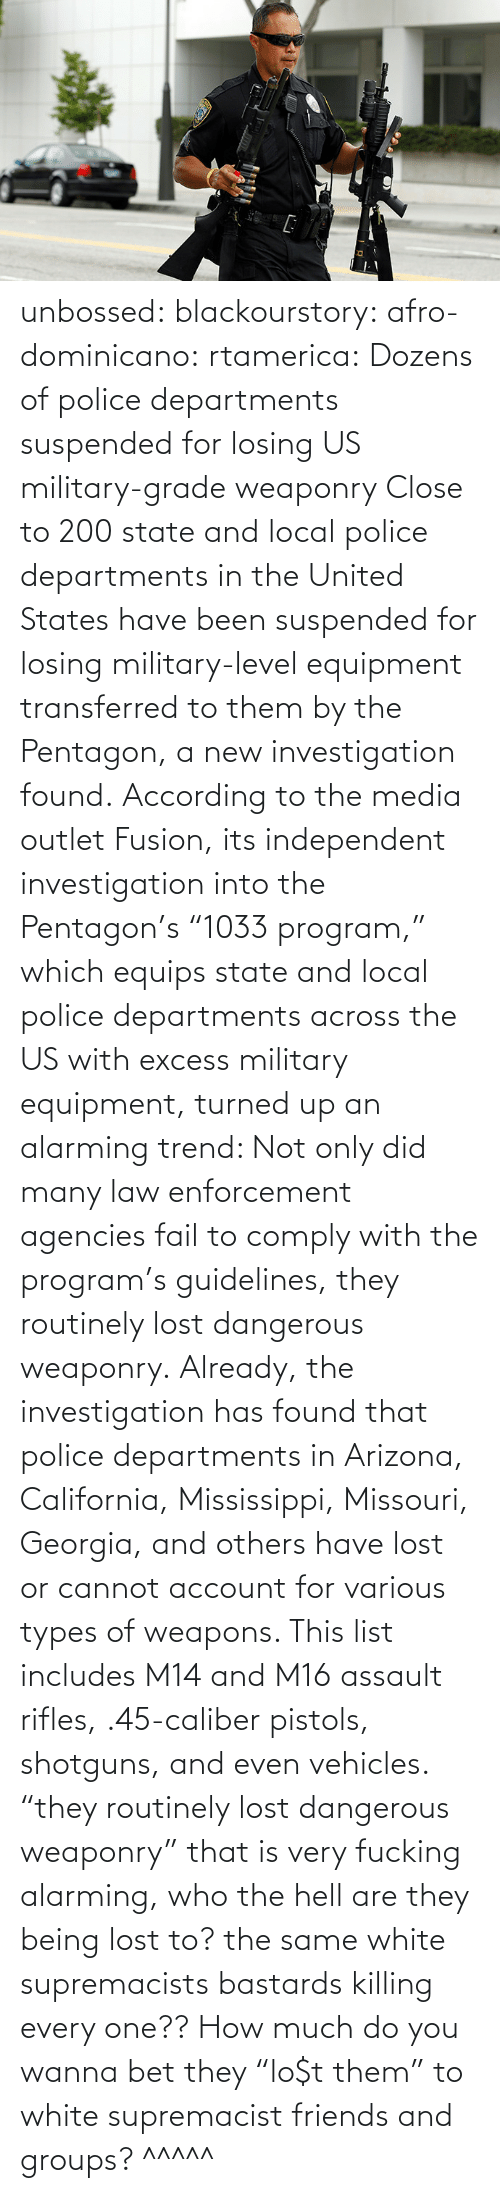 "lose: unbossed: blackourstory:  afro-dominicano:  rtamerica:  Dozens of police departments suspended for losing US military-grade weaponry Close to 200 state and local police departments in the United States have been suspended for losing military-level equipment transferred to them by the Pentagon, a new investigation found. According to the media outlet Fusion, its independent investigation into the Pentagon's ""1033 program,"" which equips state and local police departments across the US with excess military equipment, turned up an alarming trend: Not only did many law enforcement agencies fail to comply with the program's guidelines, they routinely lost dangerous weaponry. Already, the investigation has found that police departments in Arizona, California, Mississippi, Missouri, Georgia, and others have lost or cannot account for various types of weapons. This list includes M14 and M16 assault rifles, .45-caliber pistols, shotguns, and even vehicles.  ""they routinely lost dangerous weaponry"" that is very fucking alarming, who the hell are they being lost to? the same white supremacists bastards killing every one??  How much do you wanna bet they ""lo$t them"" to white supremacist friends and groups?   ^^^^^"